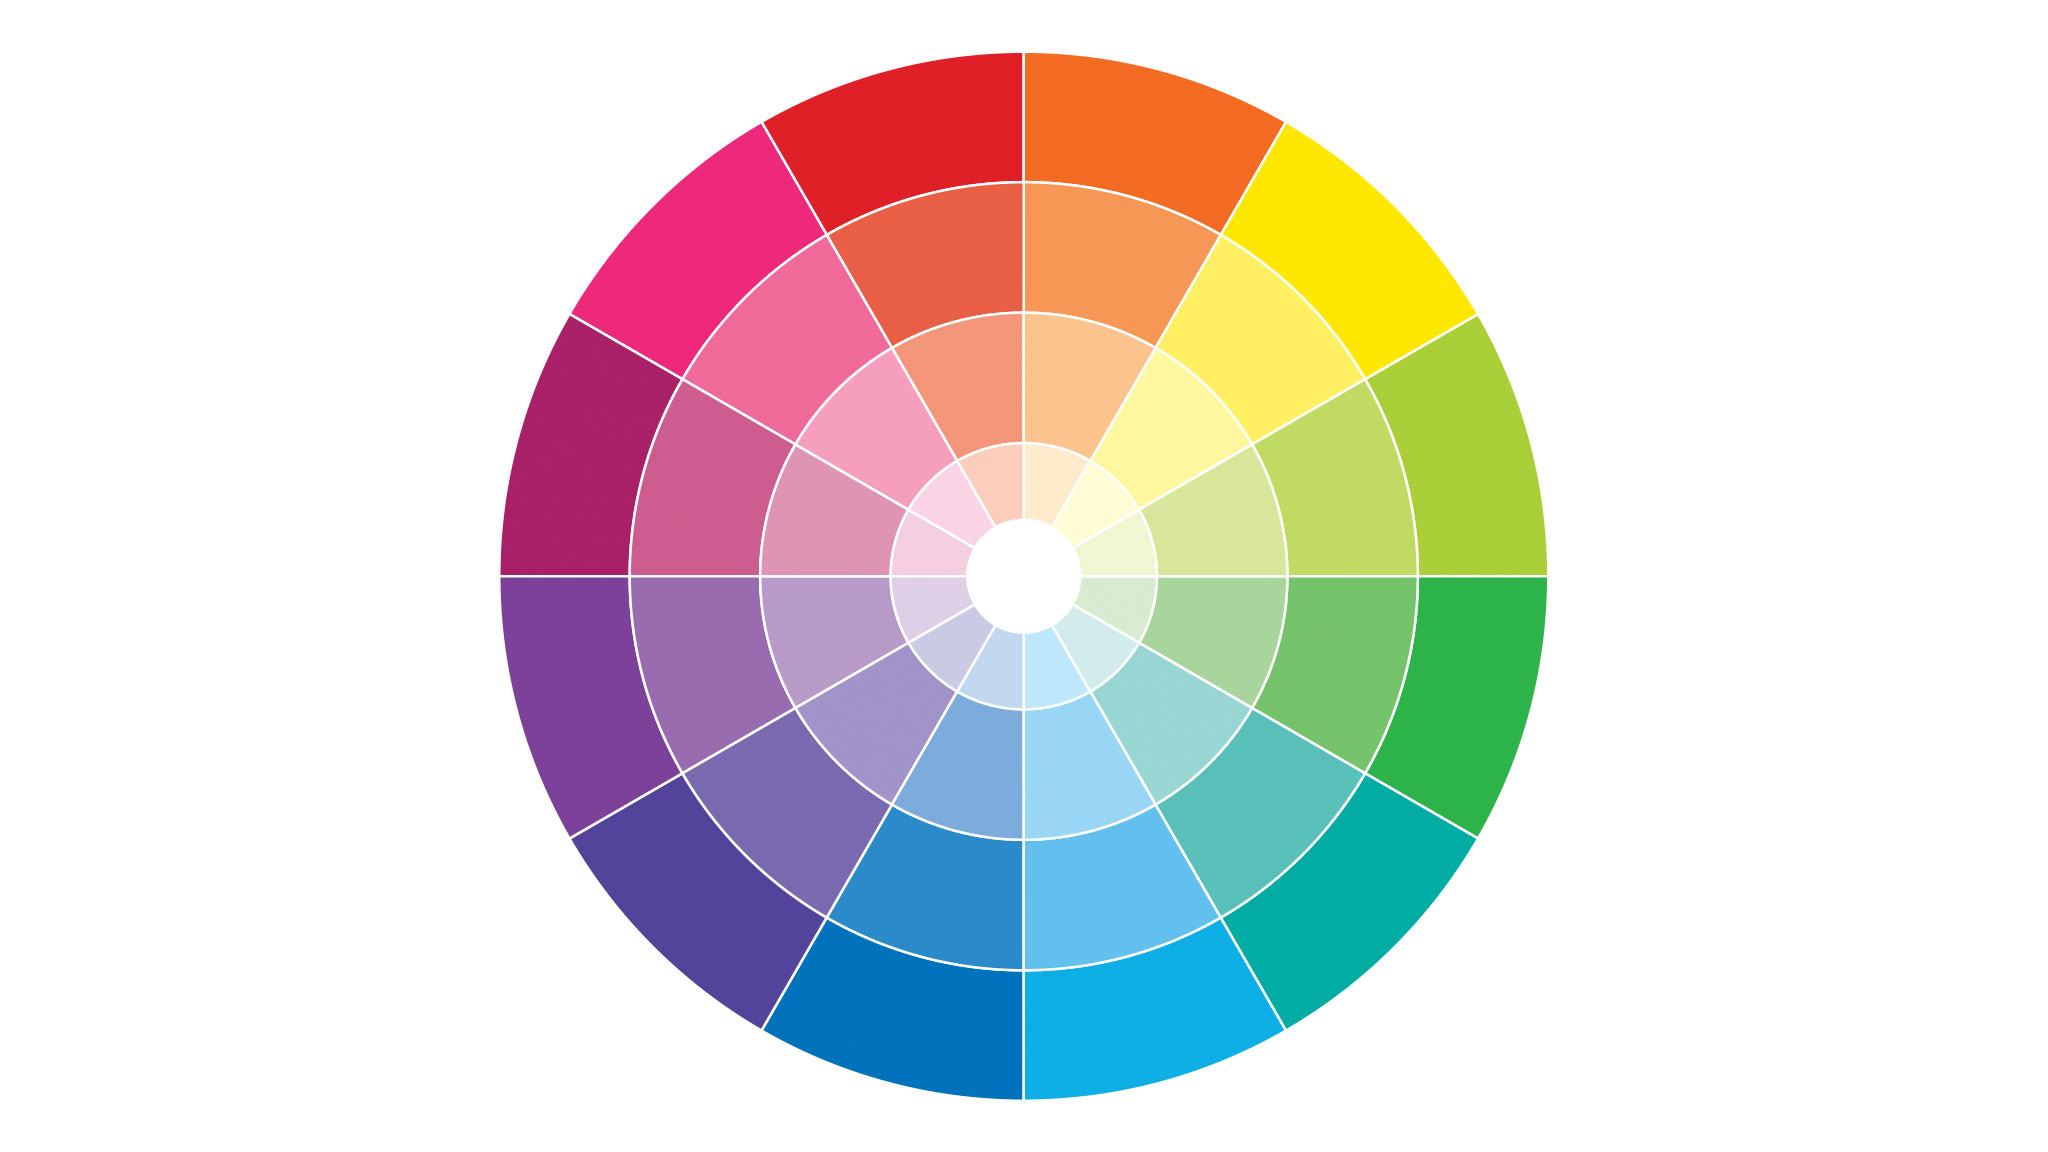 Color theory in UI design